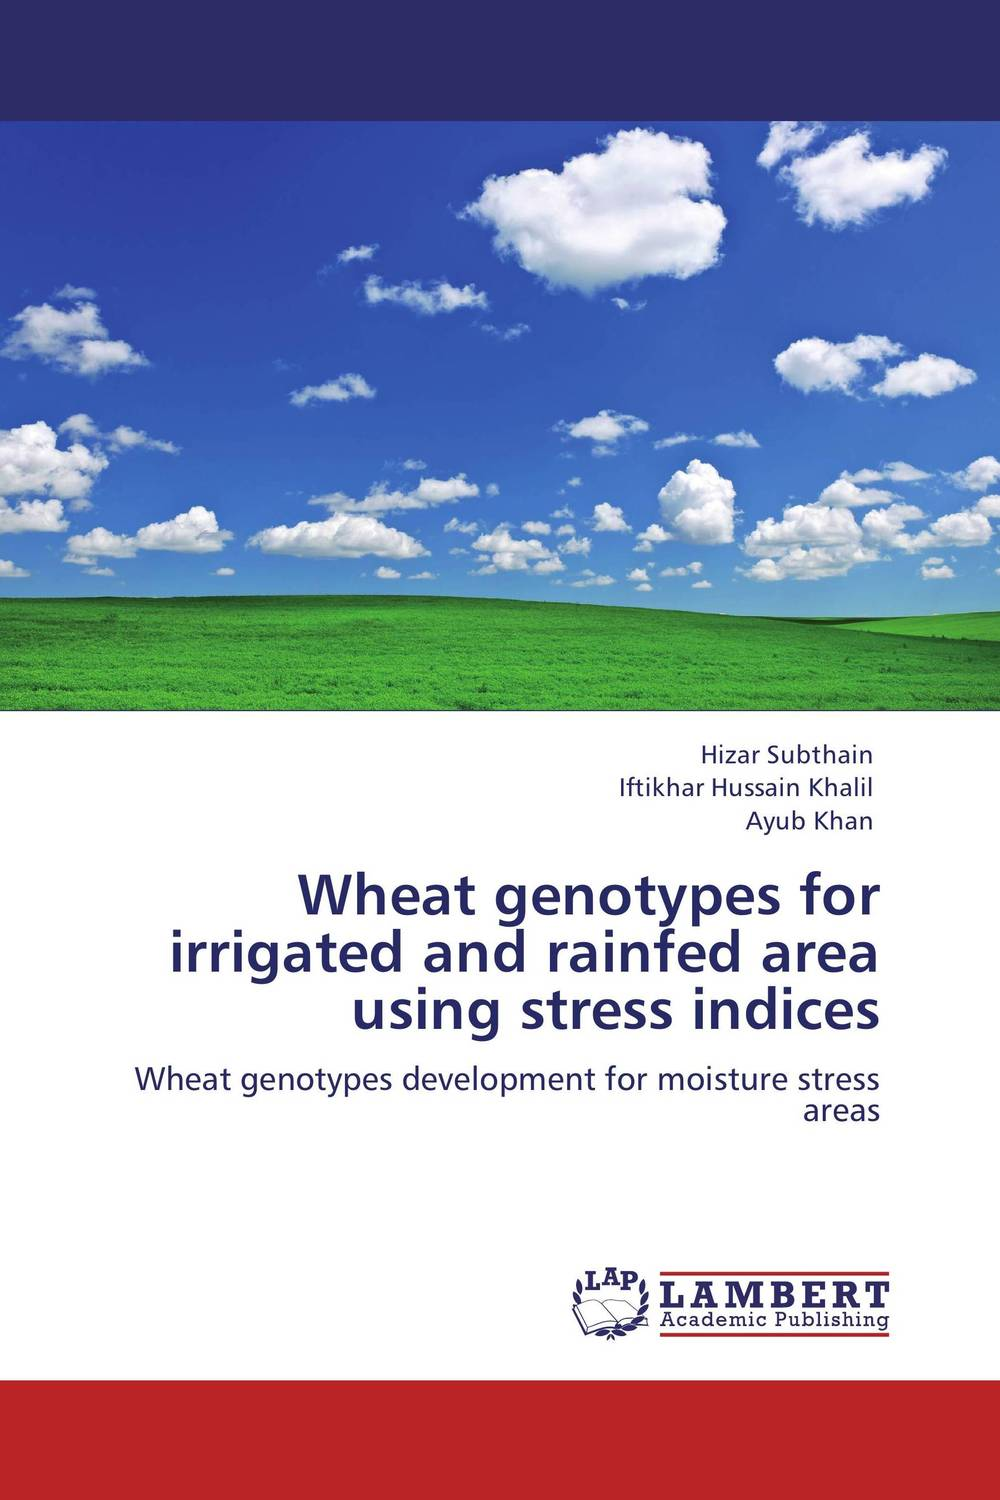 Wheat genotypes for irrigated and rainfed area using stress indices